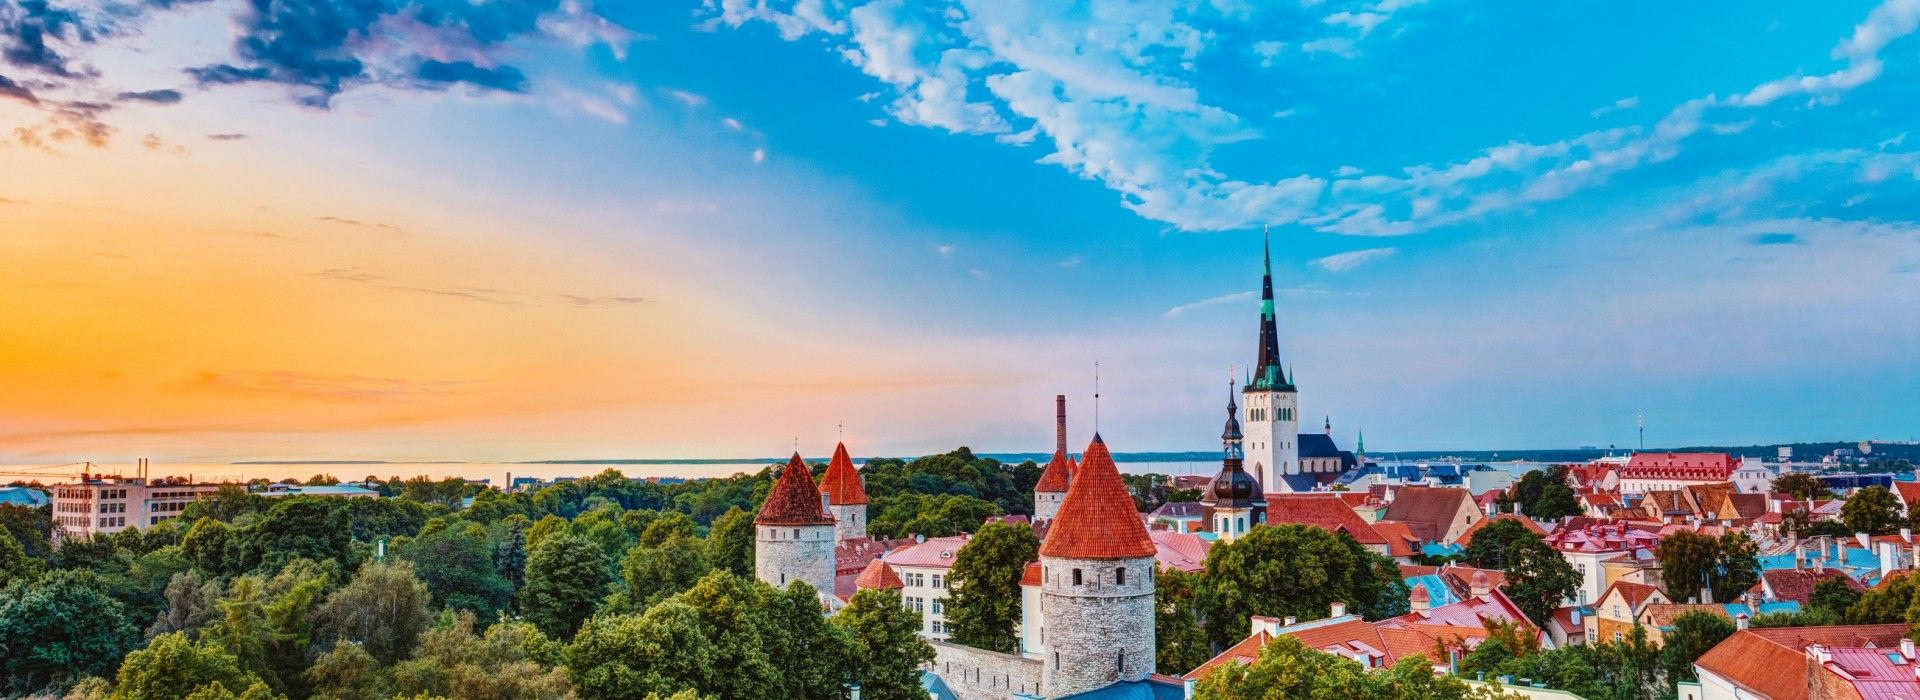 Sightseeing, attractions, culture and history Tours in Baltic